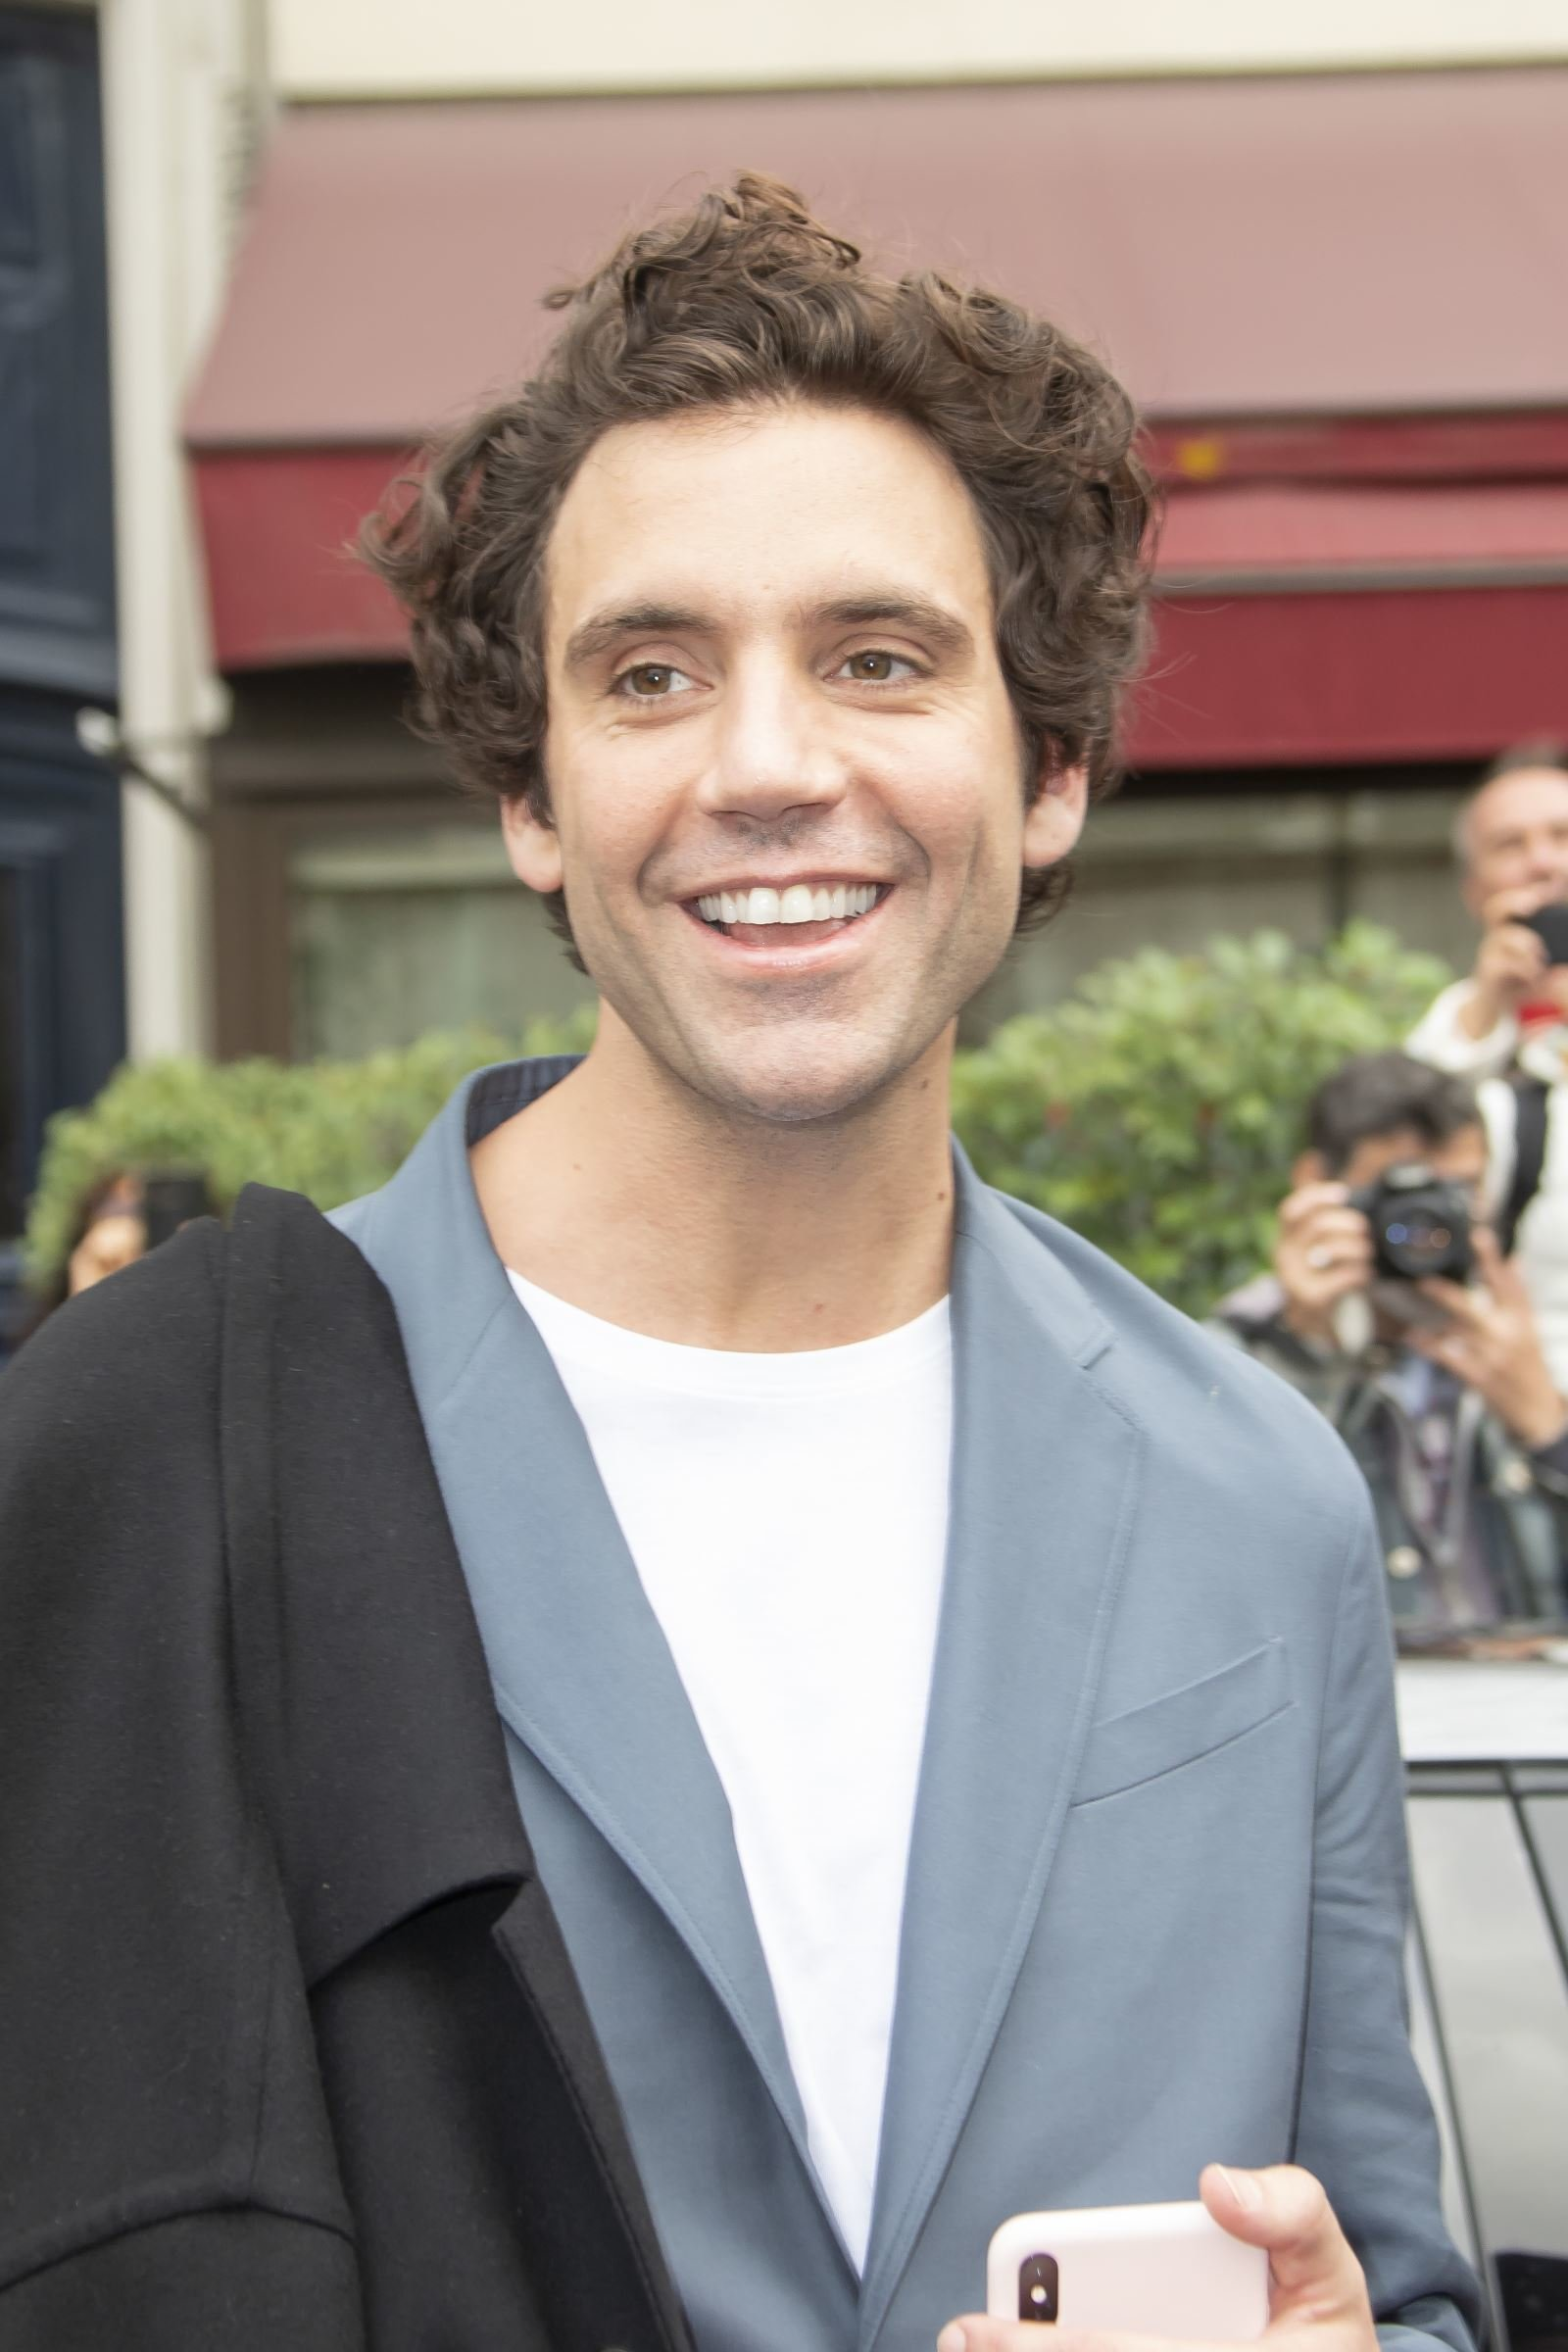 Mika attends Valentino S/S 2020 on Sept. 29, 2019 - Page 2 - Mika ...